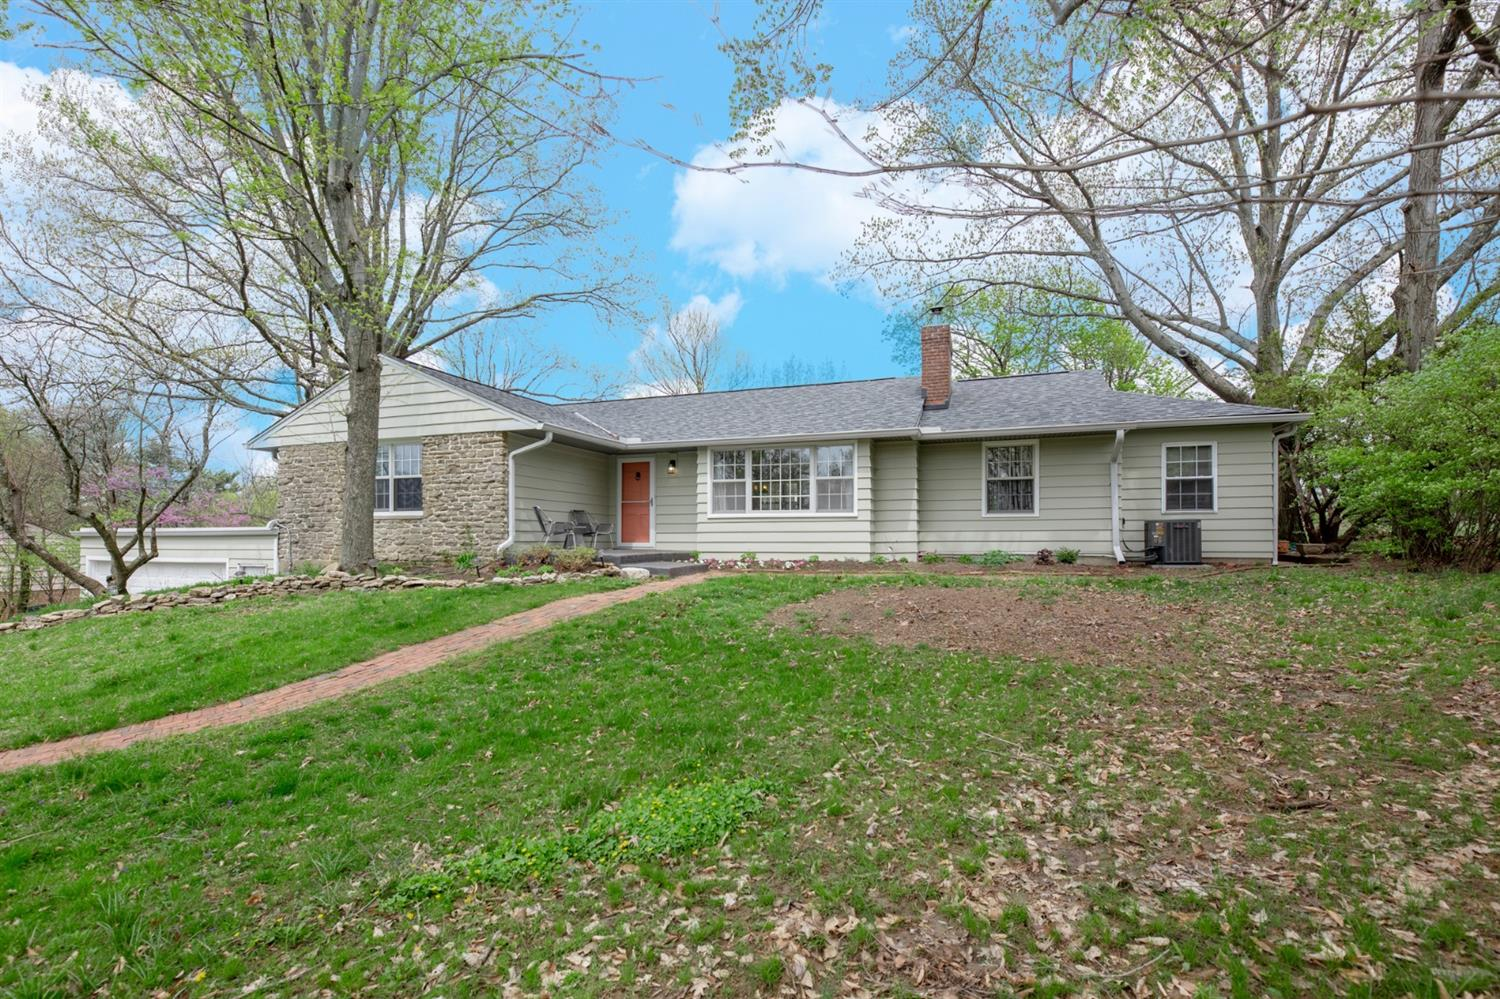 Photo 2 for 560 Beechtree Dr Finneytown, OH 45224